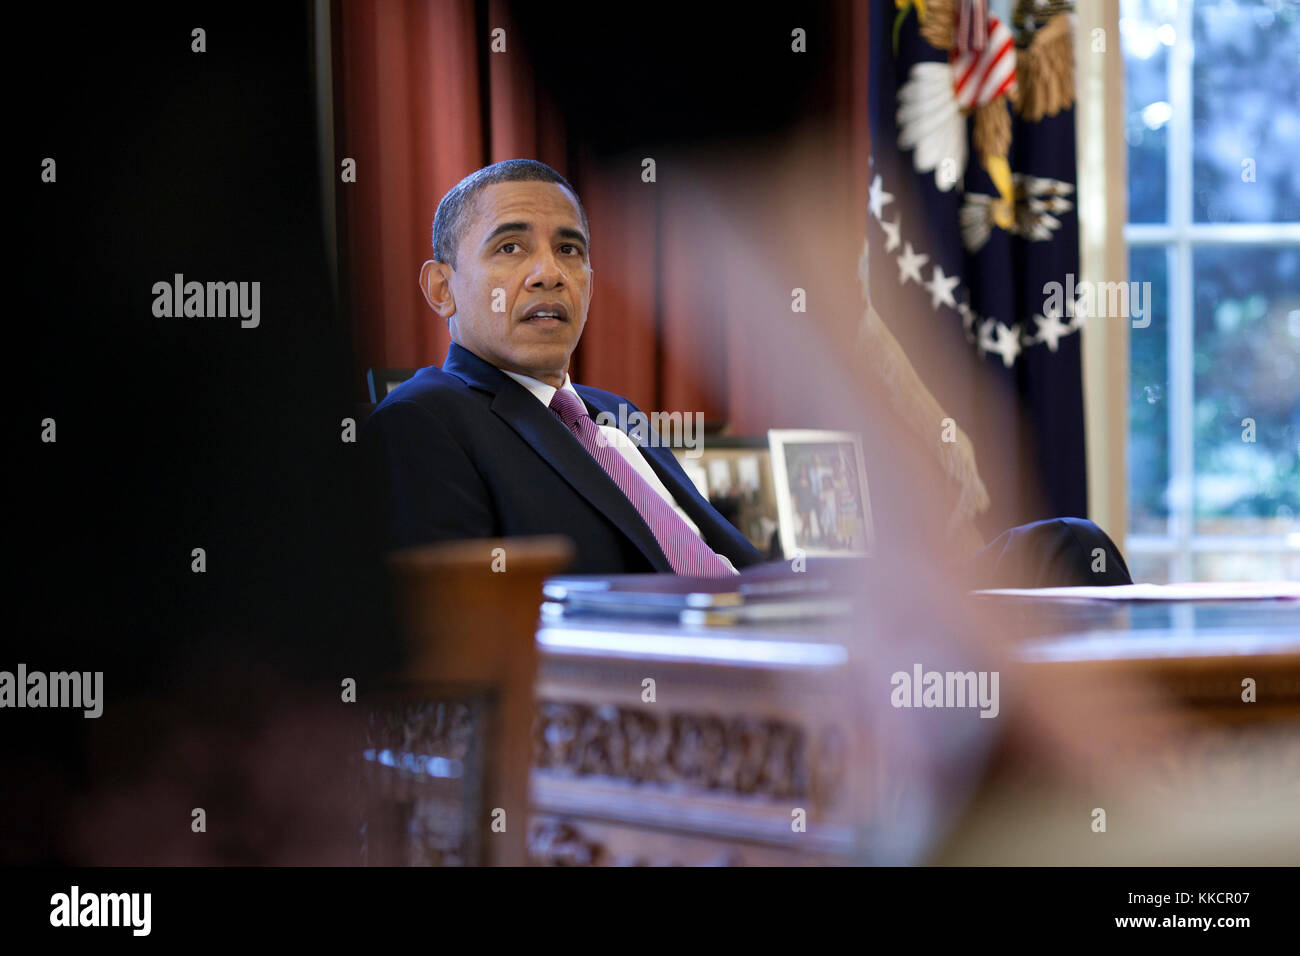 President Barack Obama talks with White House Counsel Kathryn Ruemmler in the Oval Office, Jan. 18, 2012. - Stock Image